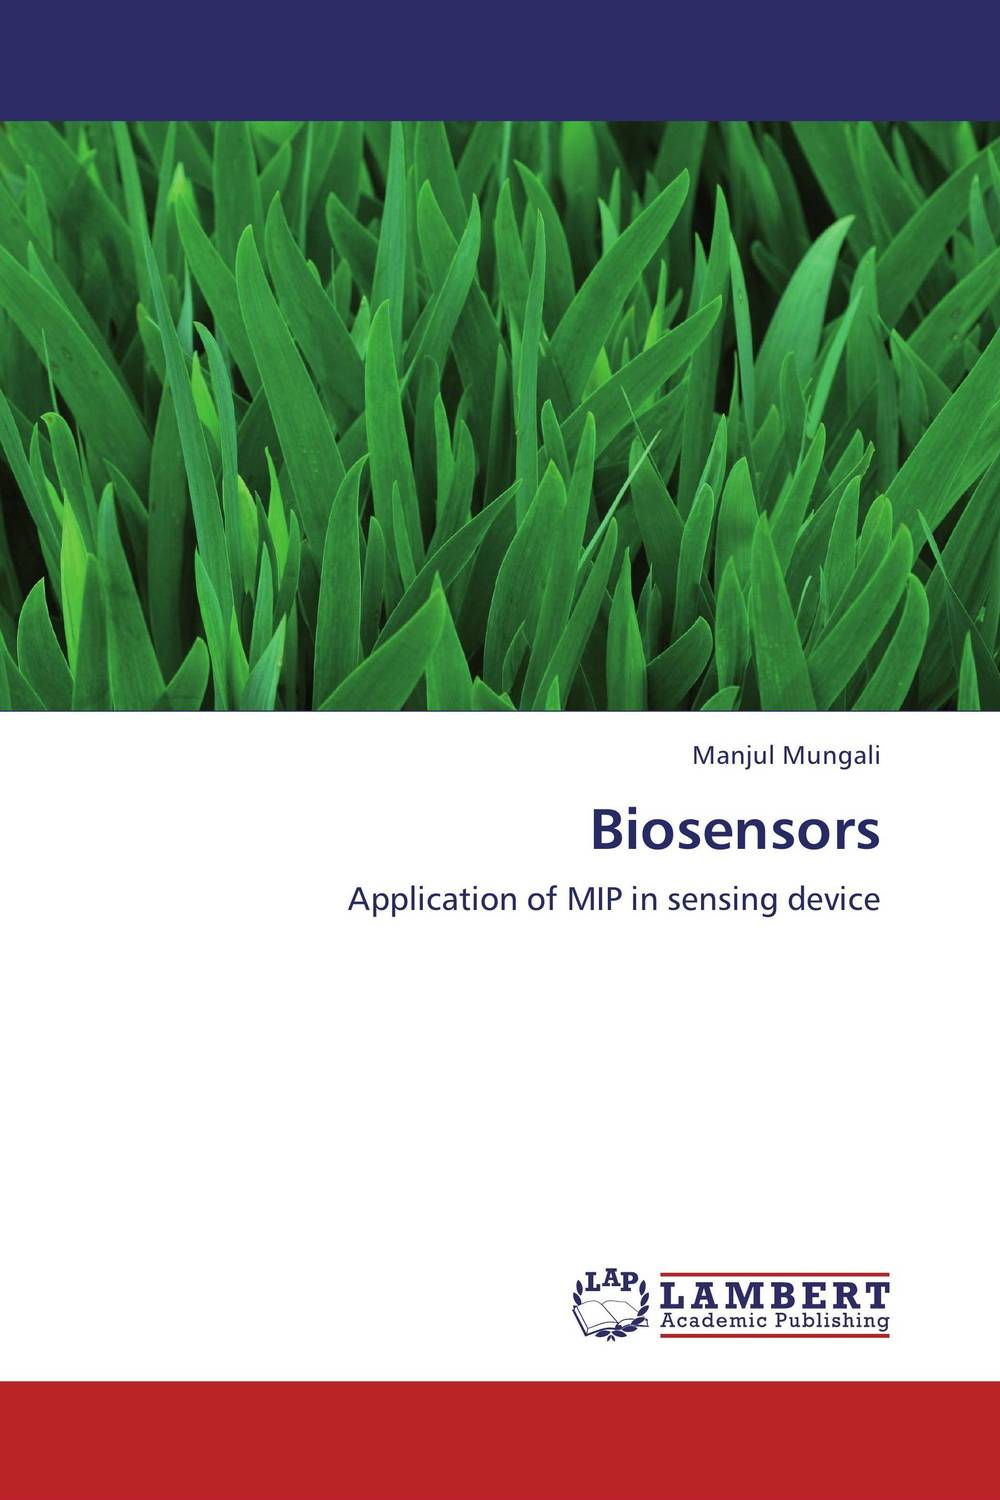 Biosensors purnima sareen sundeep kumar and rakesh singh molecular and pathological characterization of slow rusting in wheat